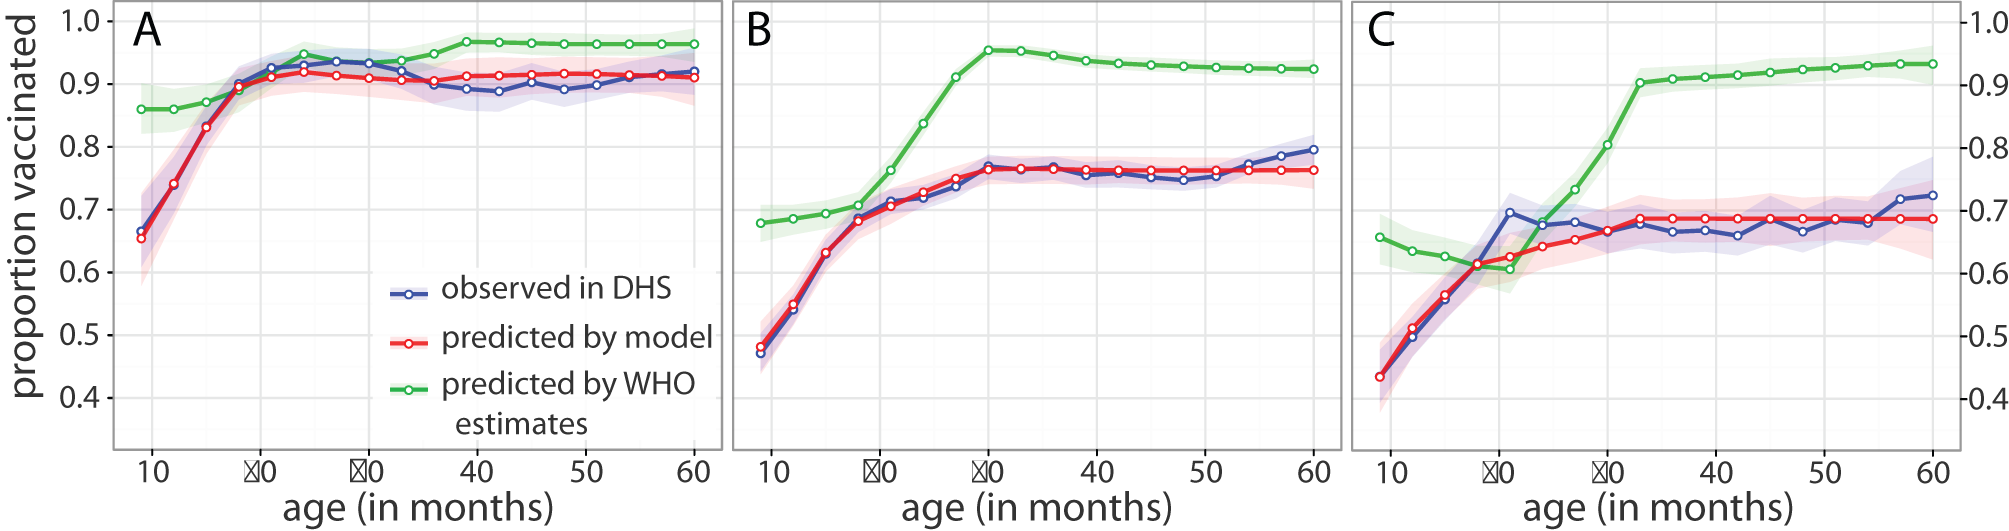 DHS and model estimates of age-specific vaccination coverage.